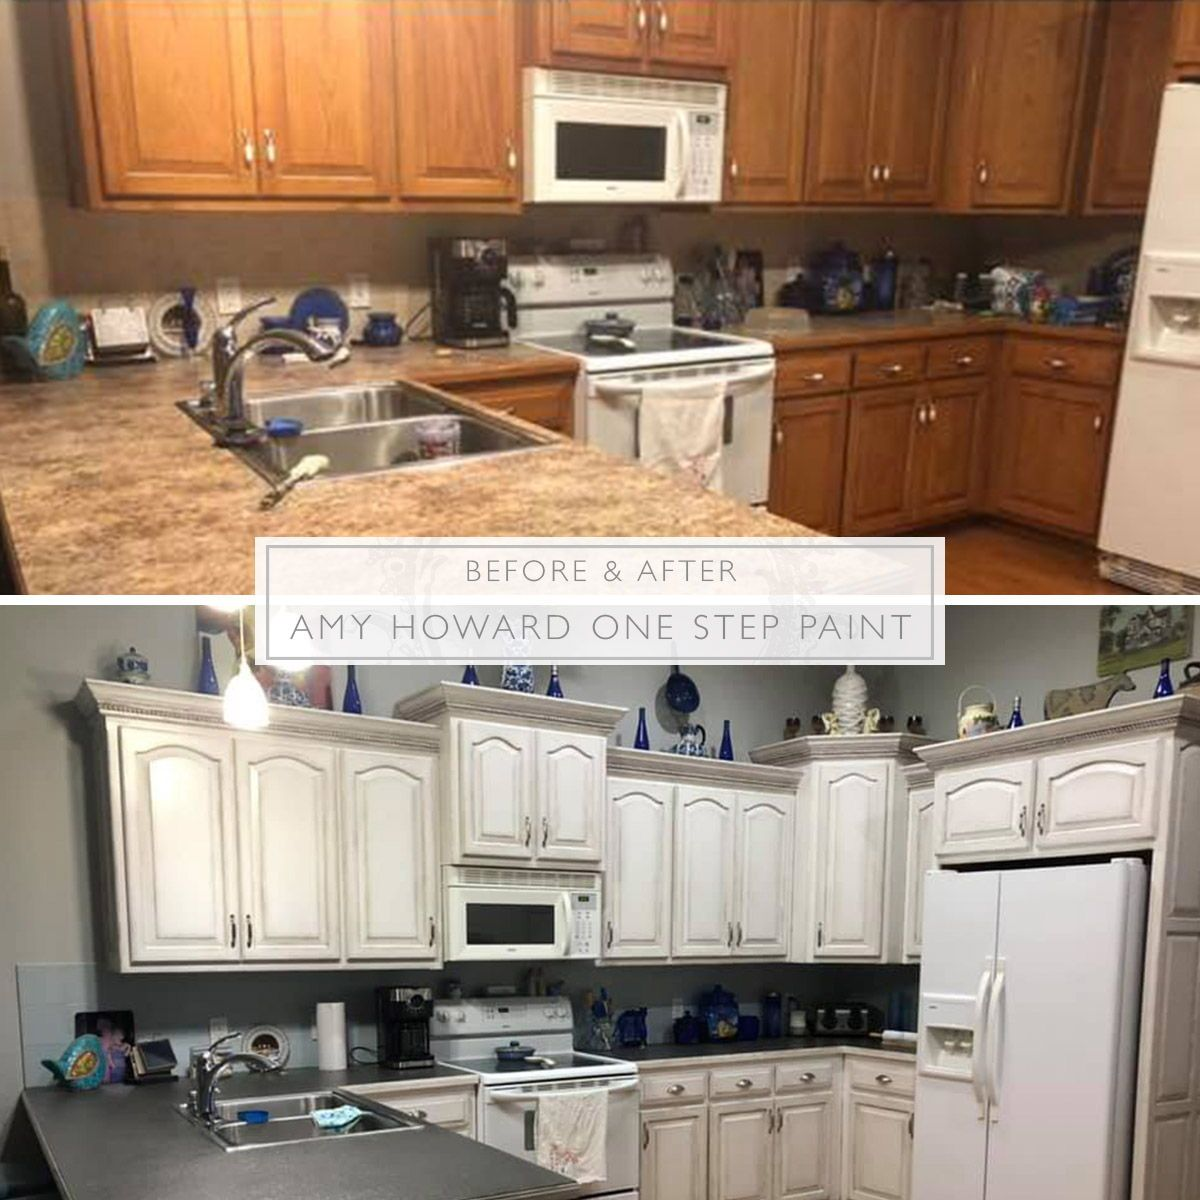 We Love This Kitchen Makeover By Amy Howard At Home Customer Pam Sadler Summers Grey She Used Ba Chalk Paint Kitchen Cabinets Kitchen Redo Chalk Paint Kitchen